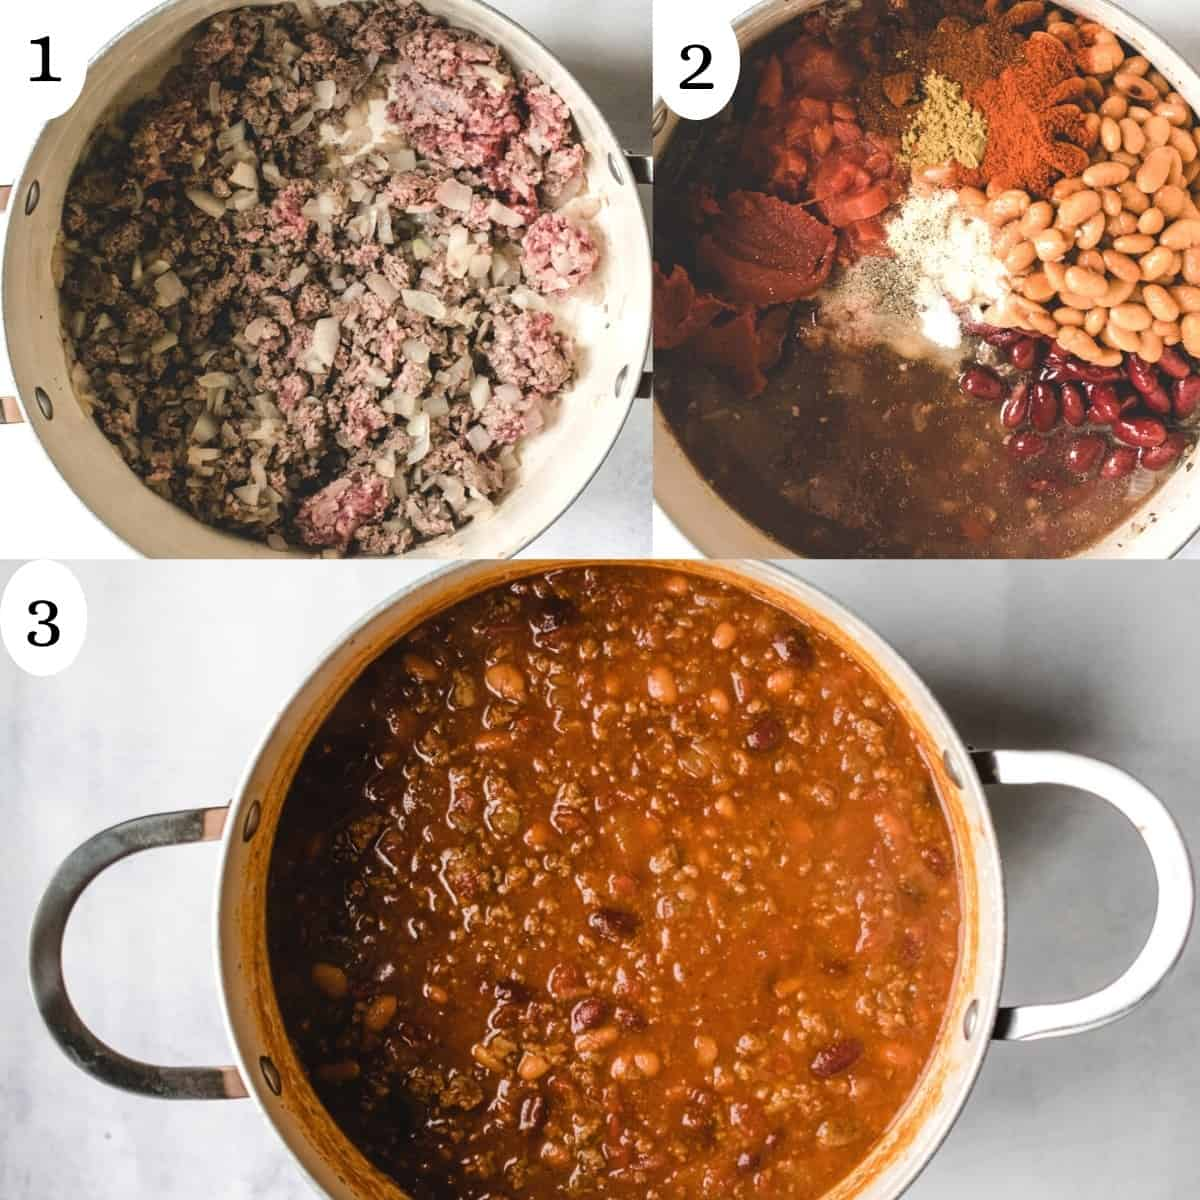 Three image collage showing how to make a chili recipe in a pot.